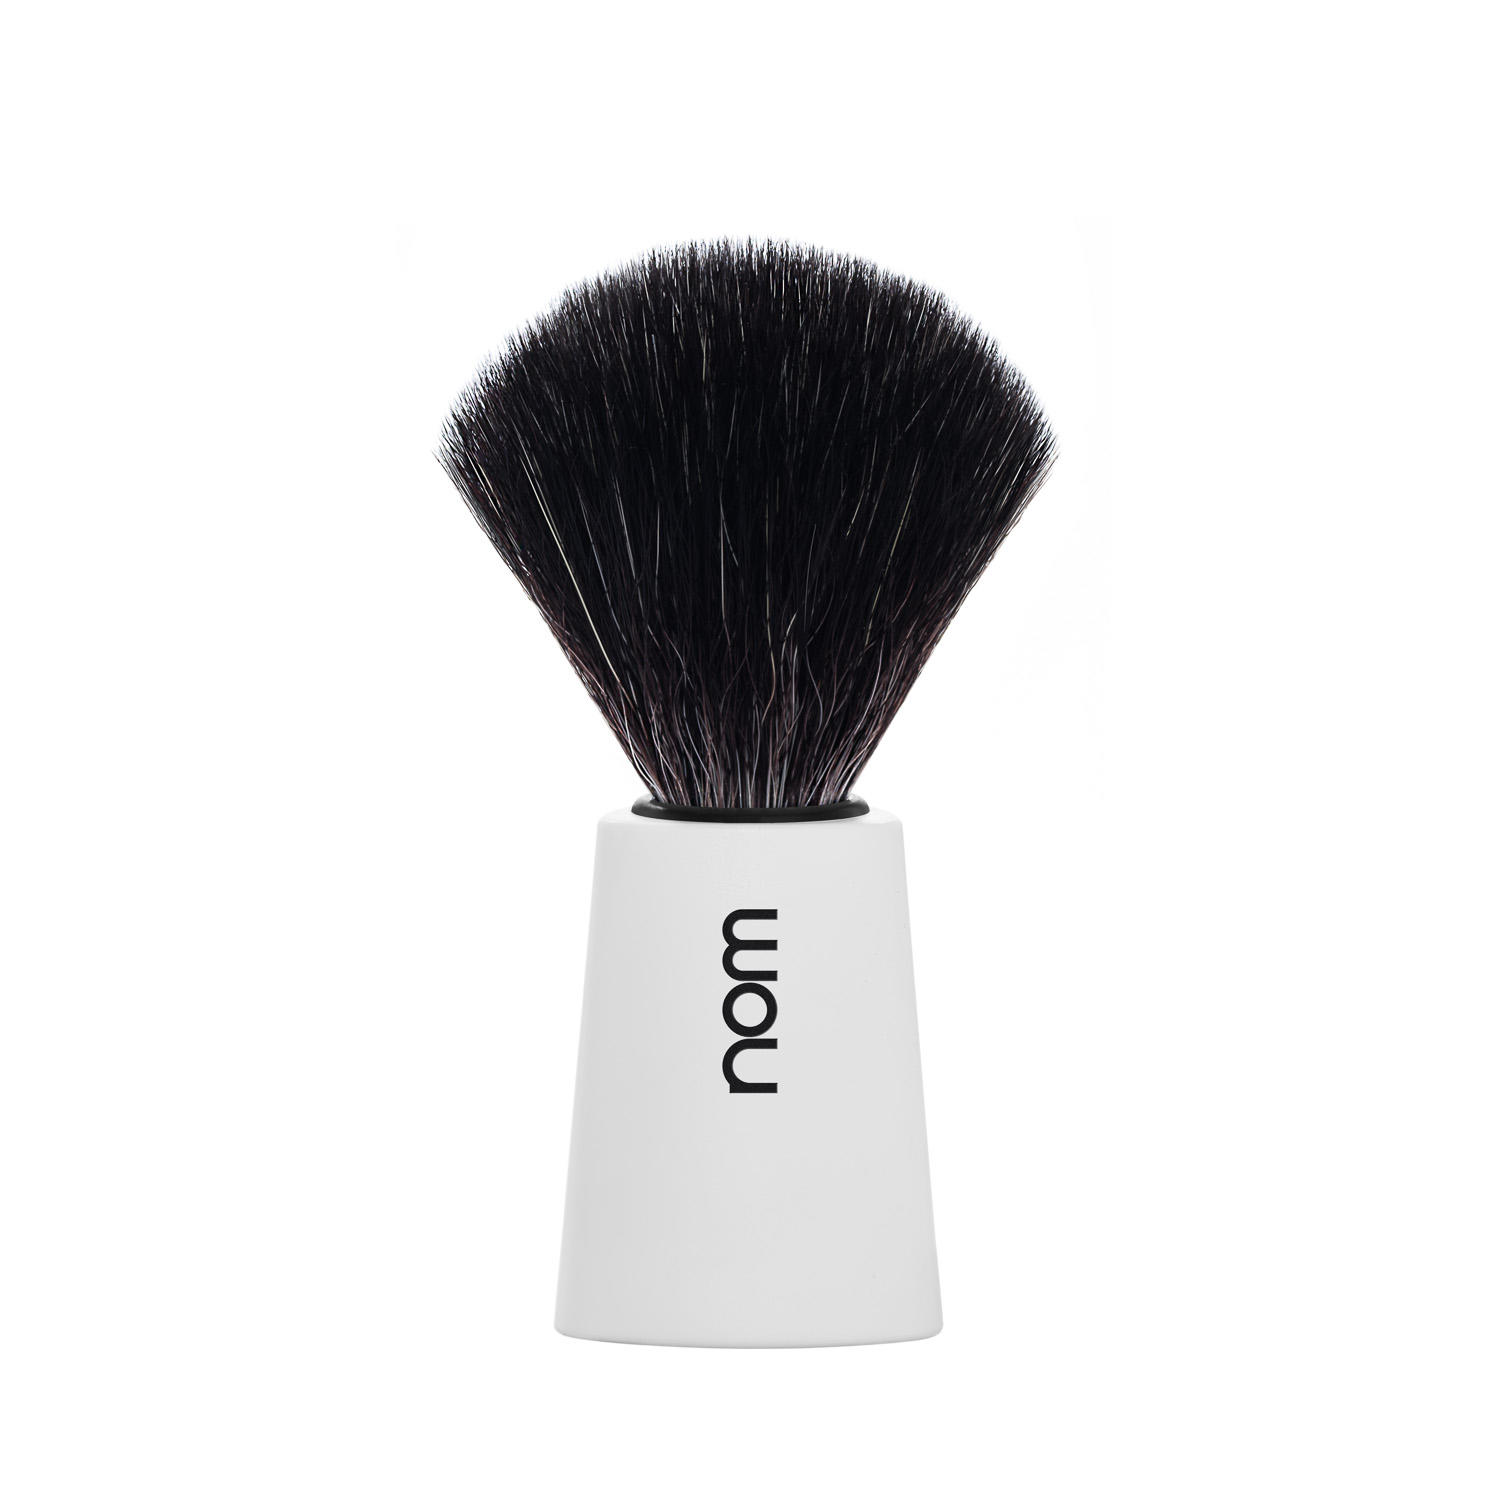 CARL21WH NOM, CARL White, Black Fibre Shaving Brush